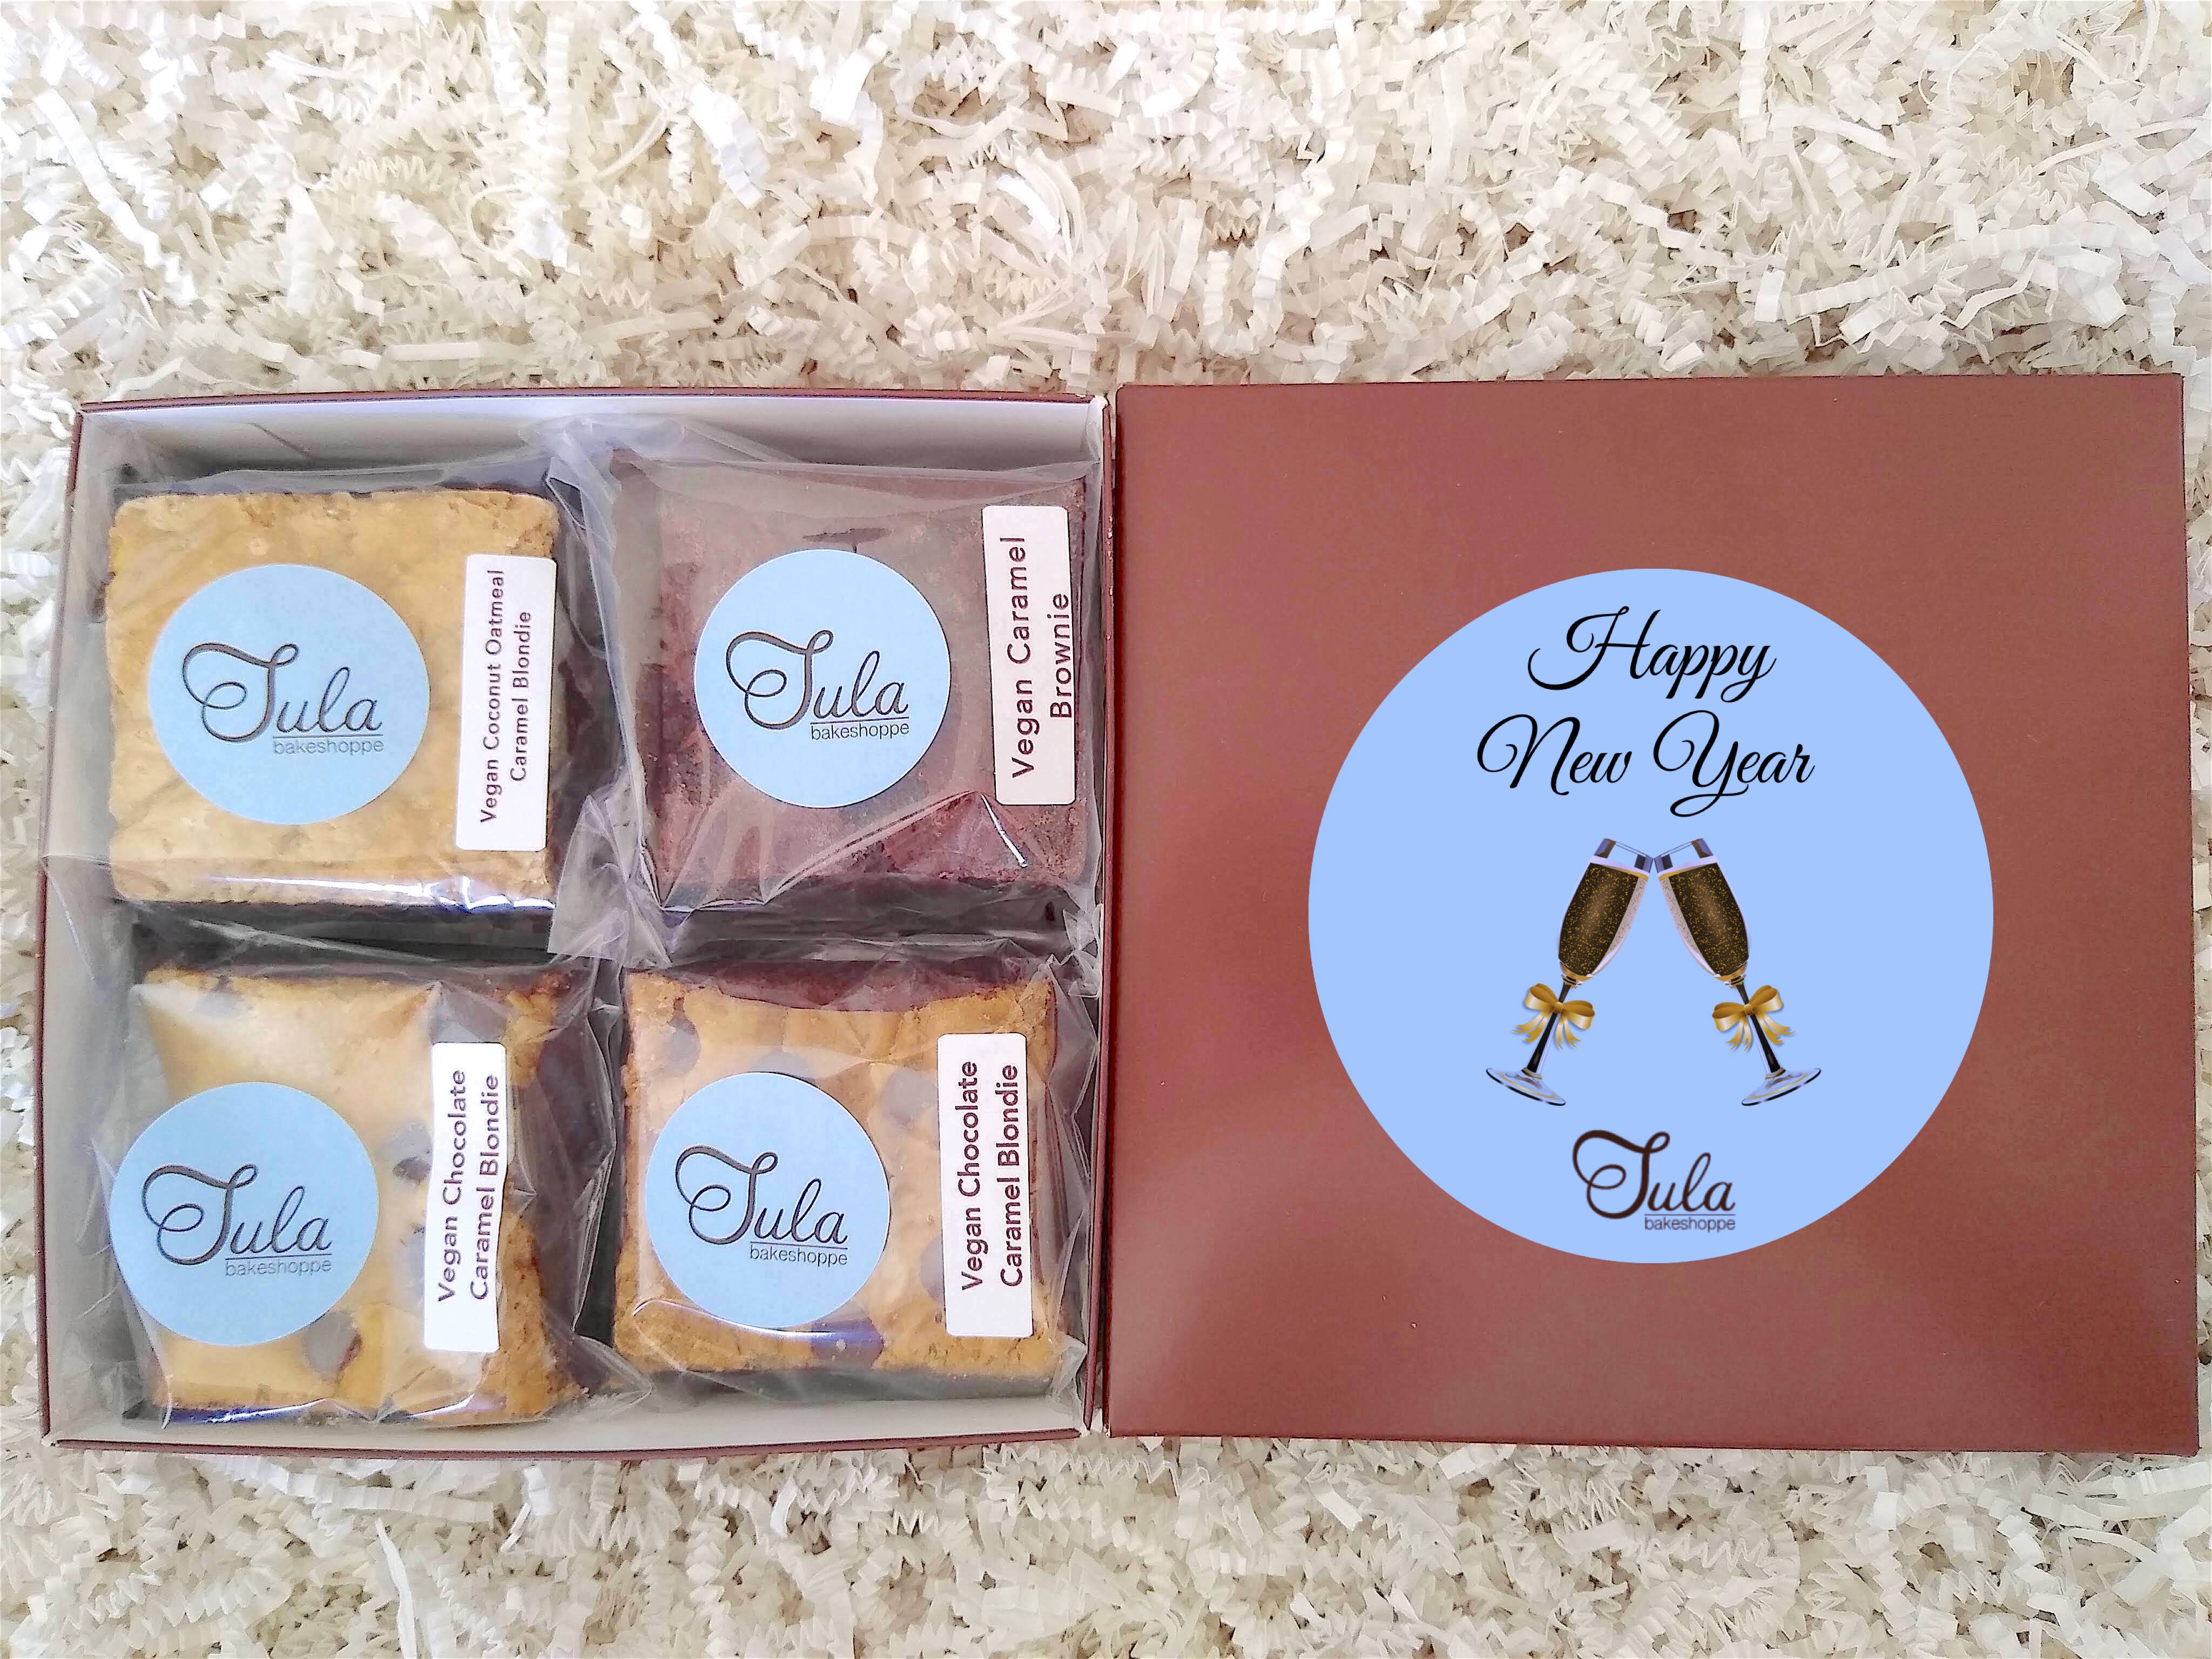 Vegan Happy New Year Caramel Lover Bars Gourmet Favor Snack Food Gifts